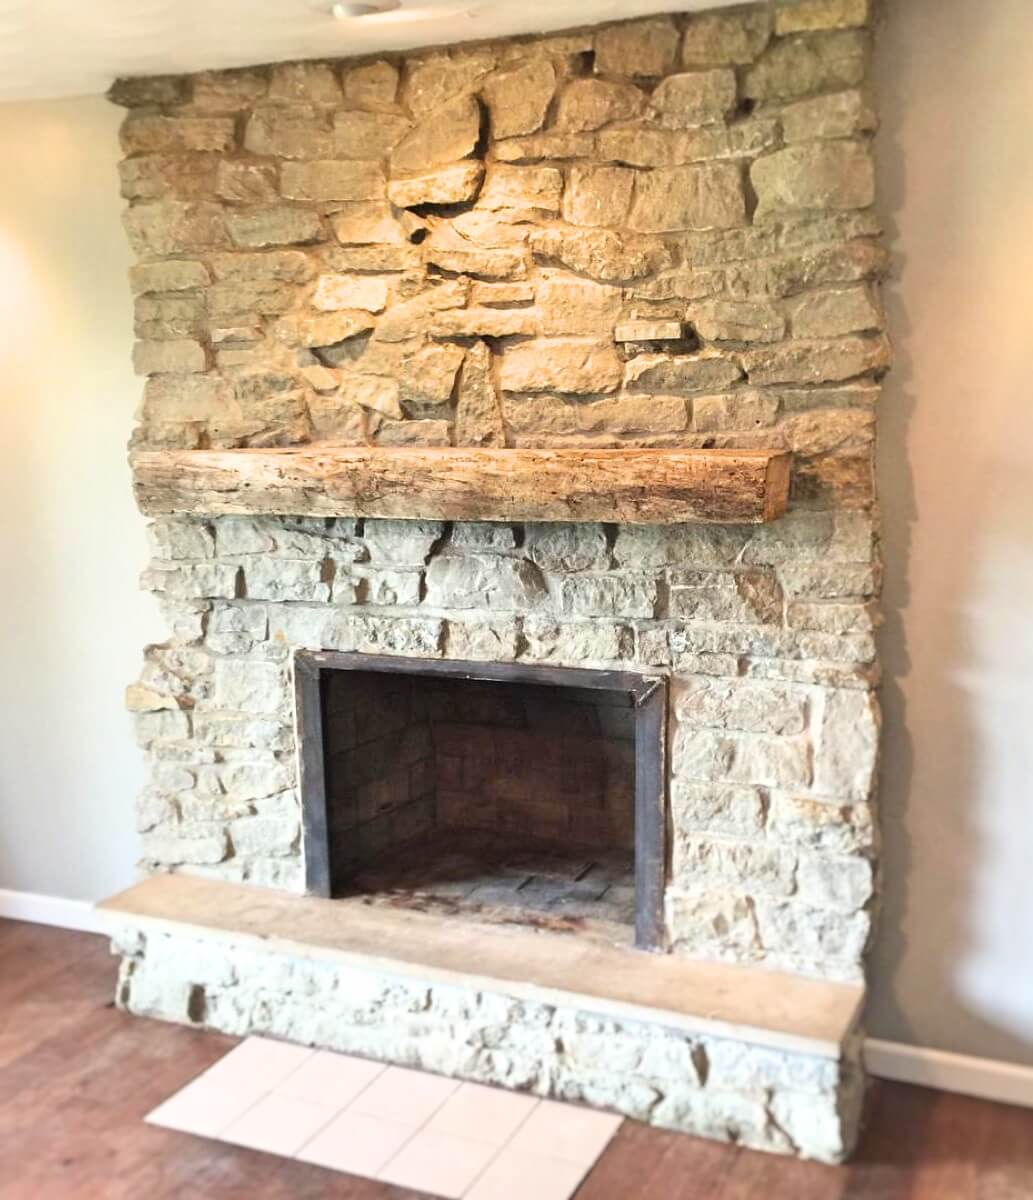 Fireplace Repair Nashville Tn Mantel Installation Nashville Chimney Masonry Outfitters